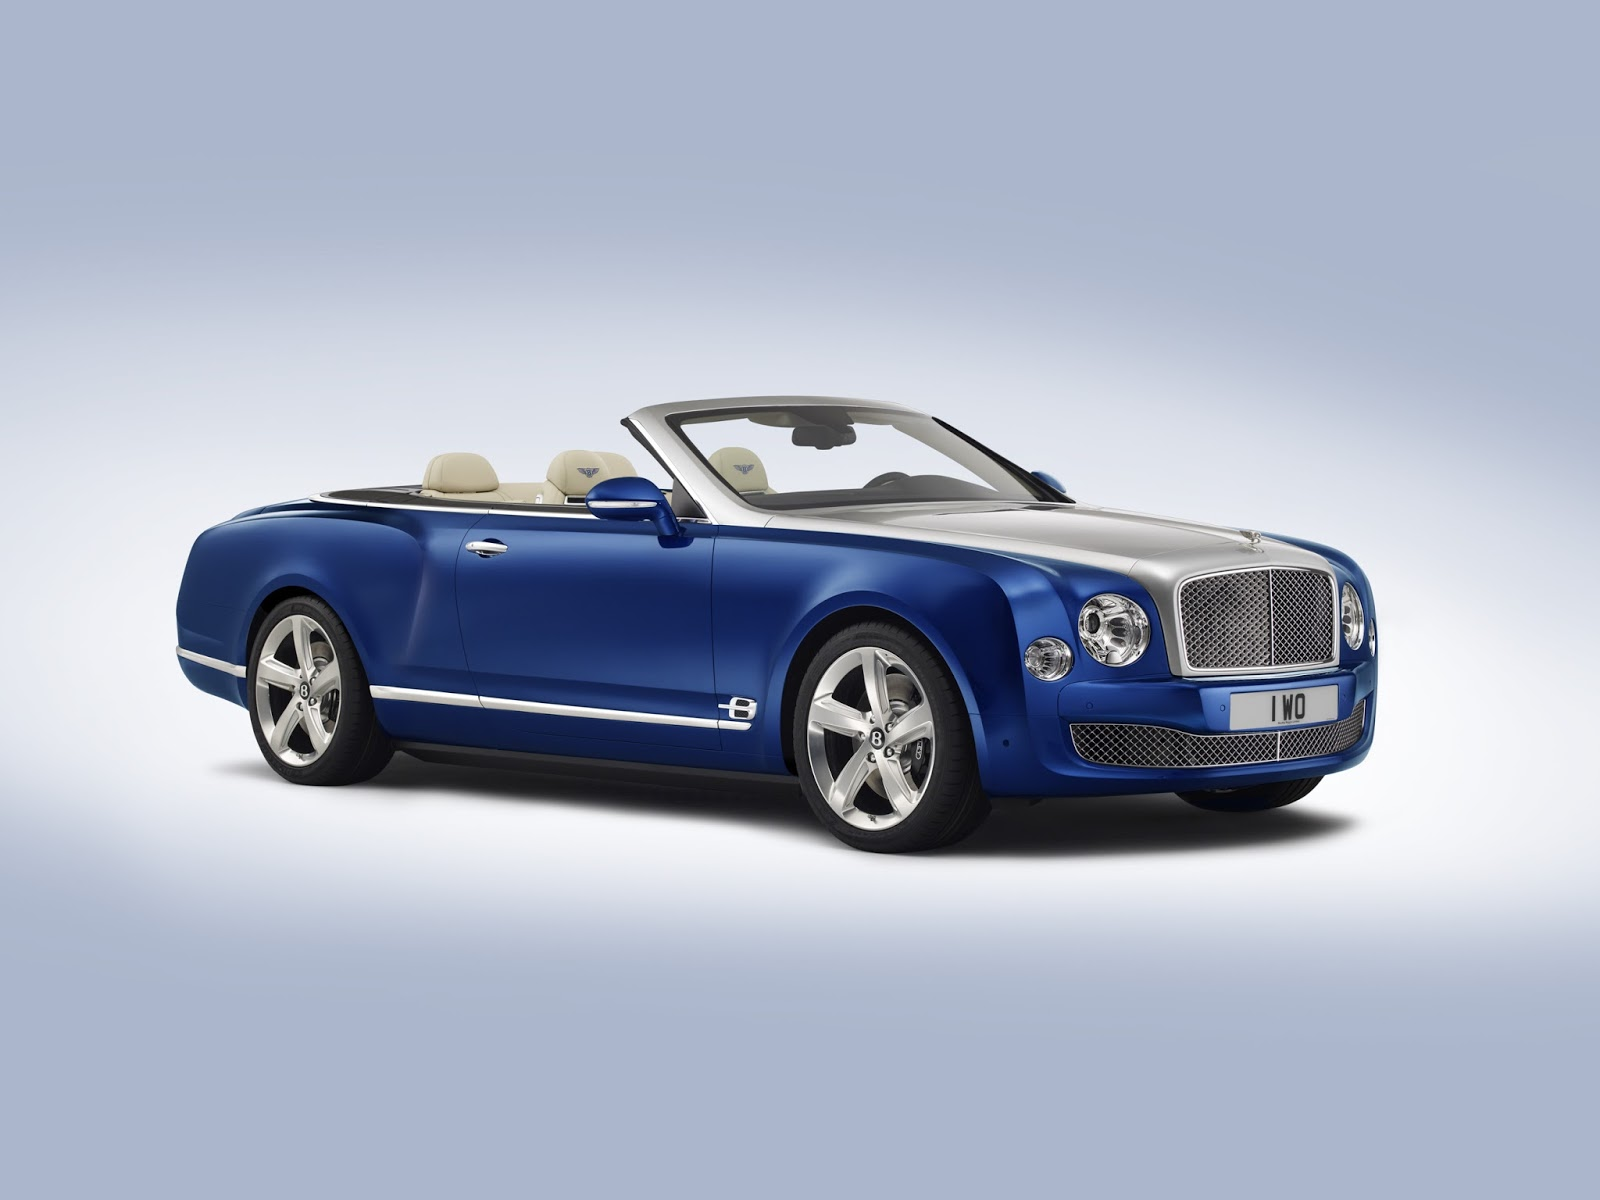 New Bentley Grand Convertible / Mulsanne Convertible